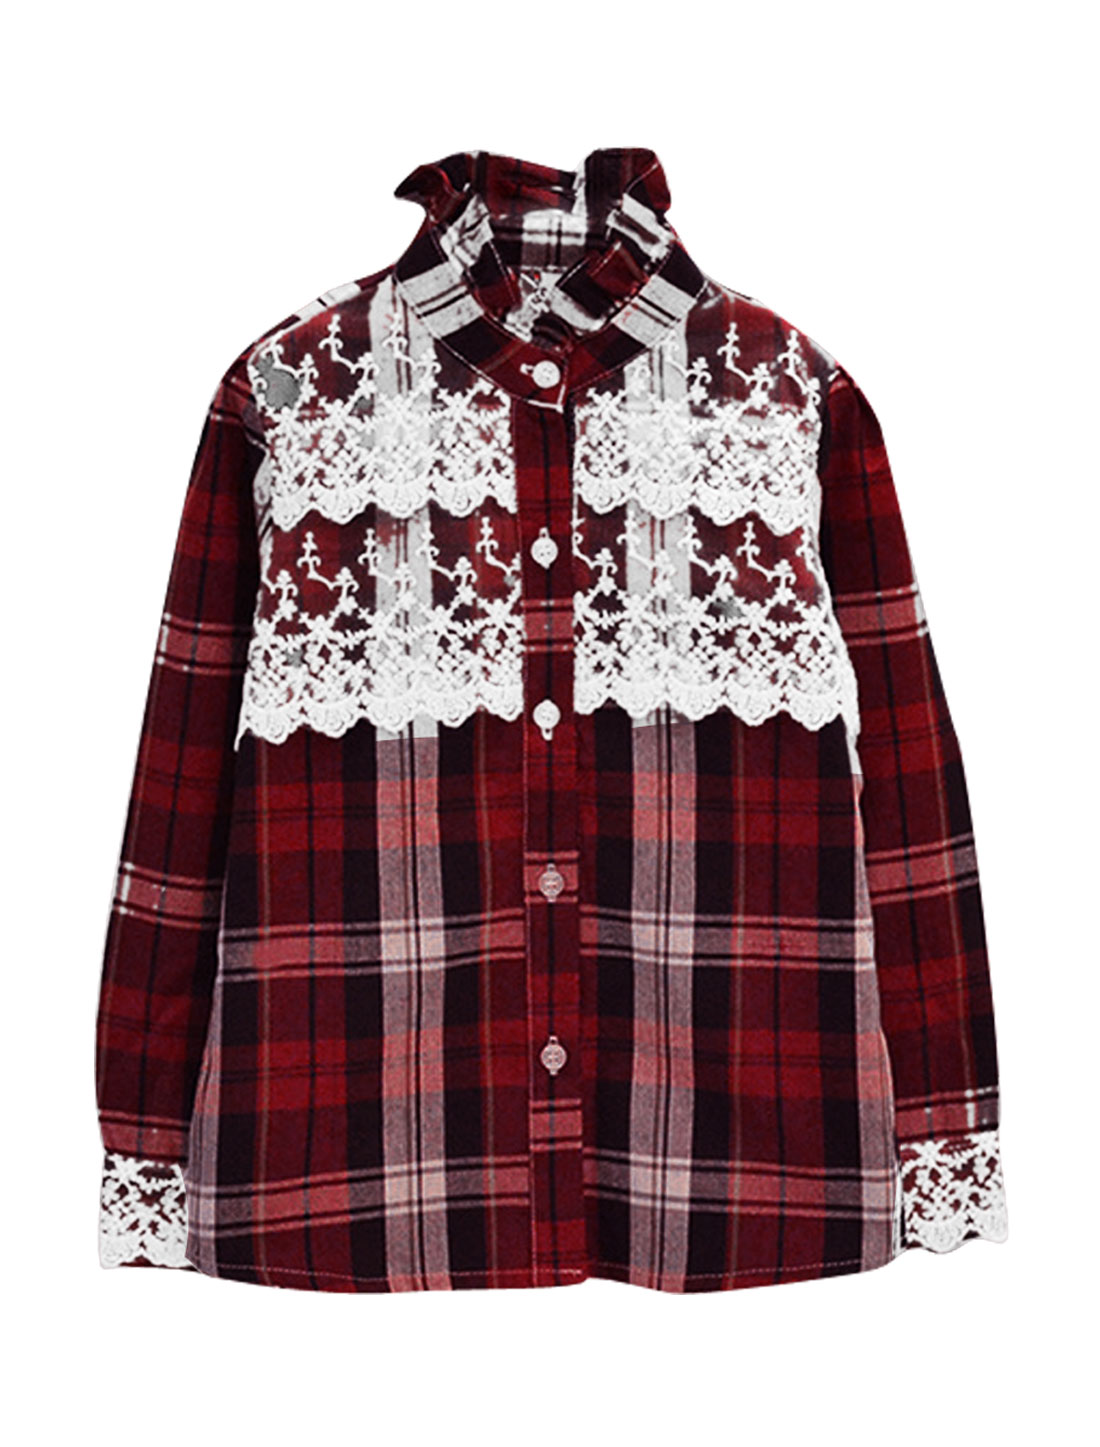 Girls Plaids Pattern Lace Splice Button Front Fitted Burgundy Shirt US Size 4